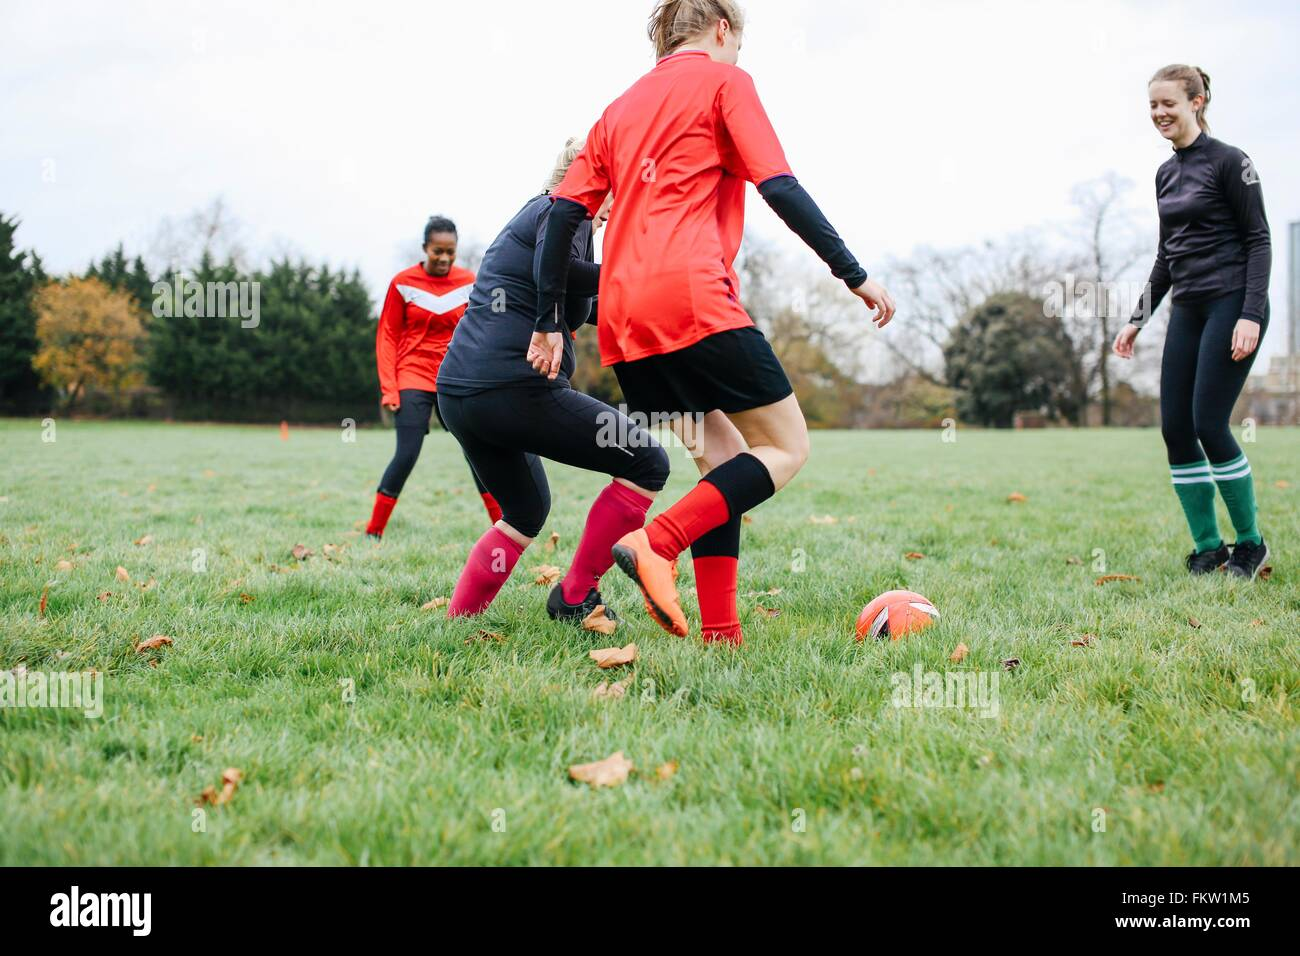 Female soccer players practicing in park - Stock Image